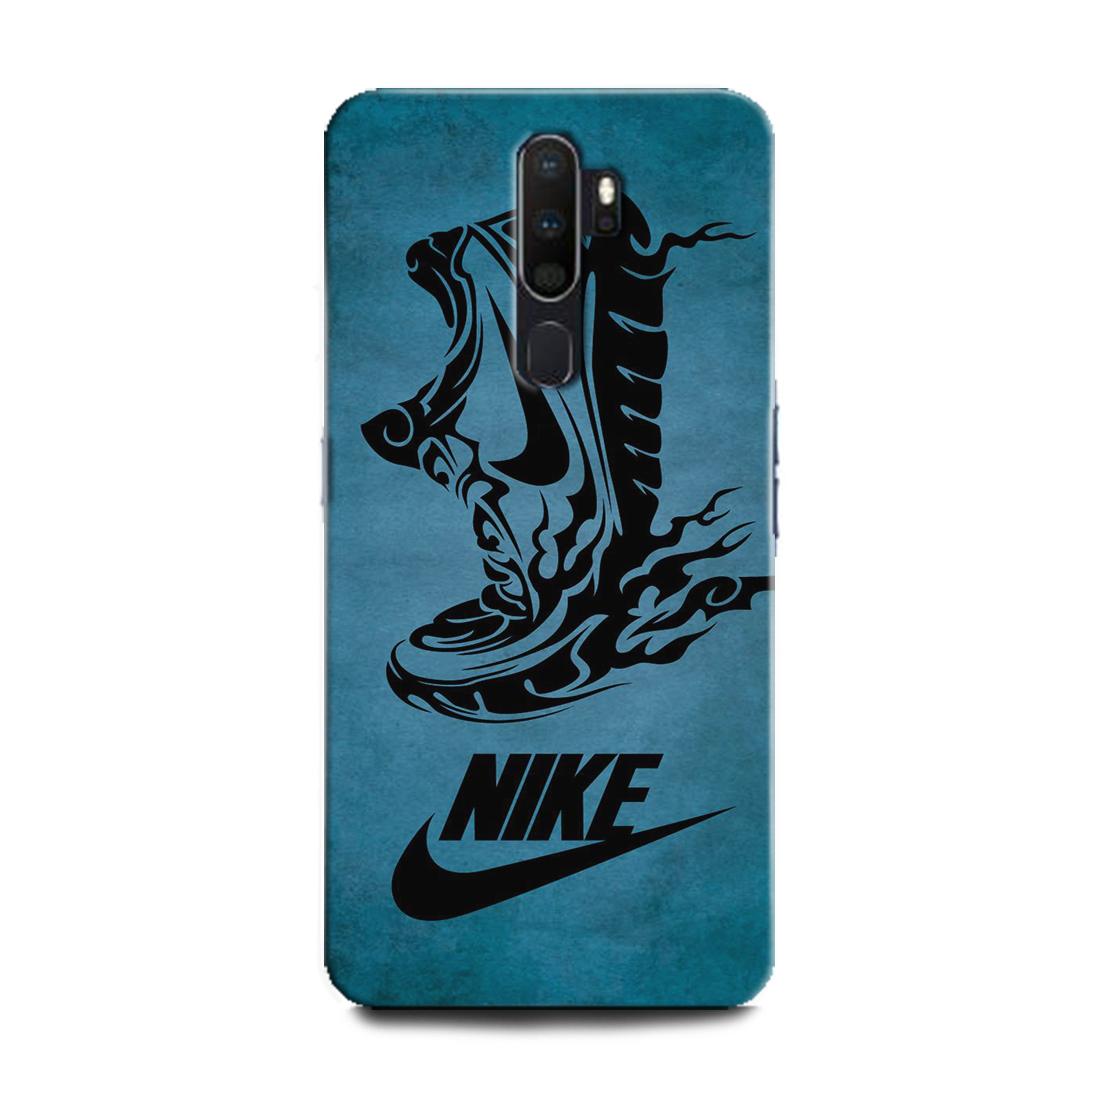 INDICRAFT Mobile Back Cover For Oppo A5 2020 / CPH1931 Hard Case (Nike, Nike Sneakers, Nike logo, Nike Shoes) (AB-OppoA52020-0137)